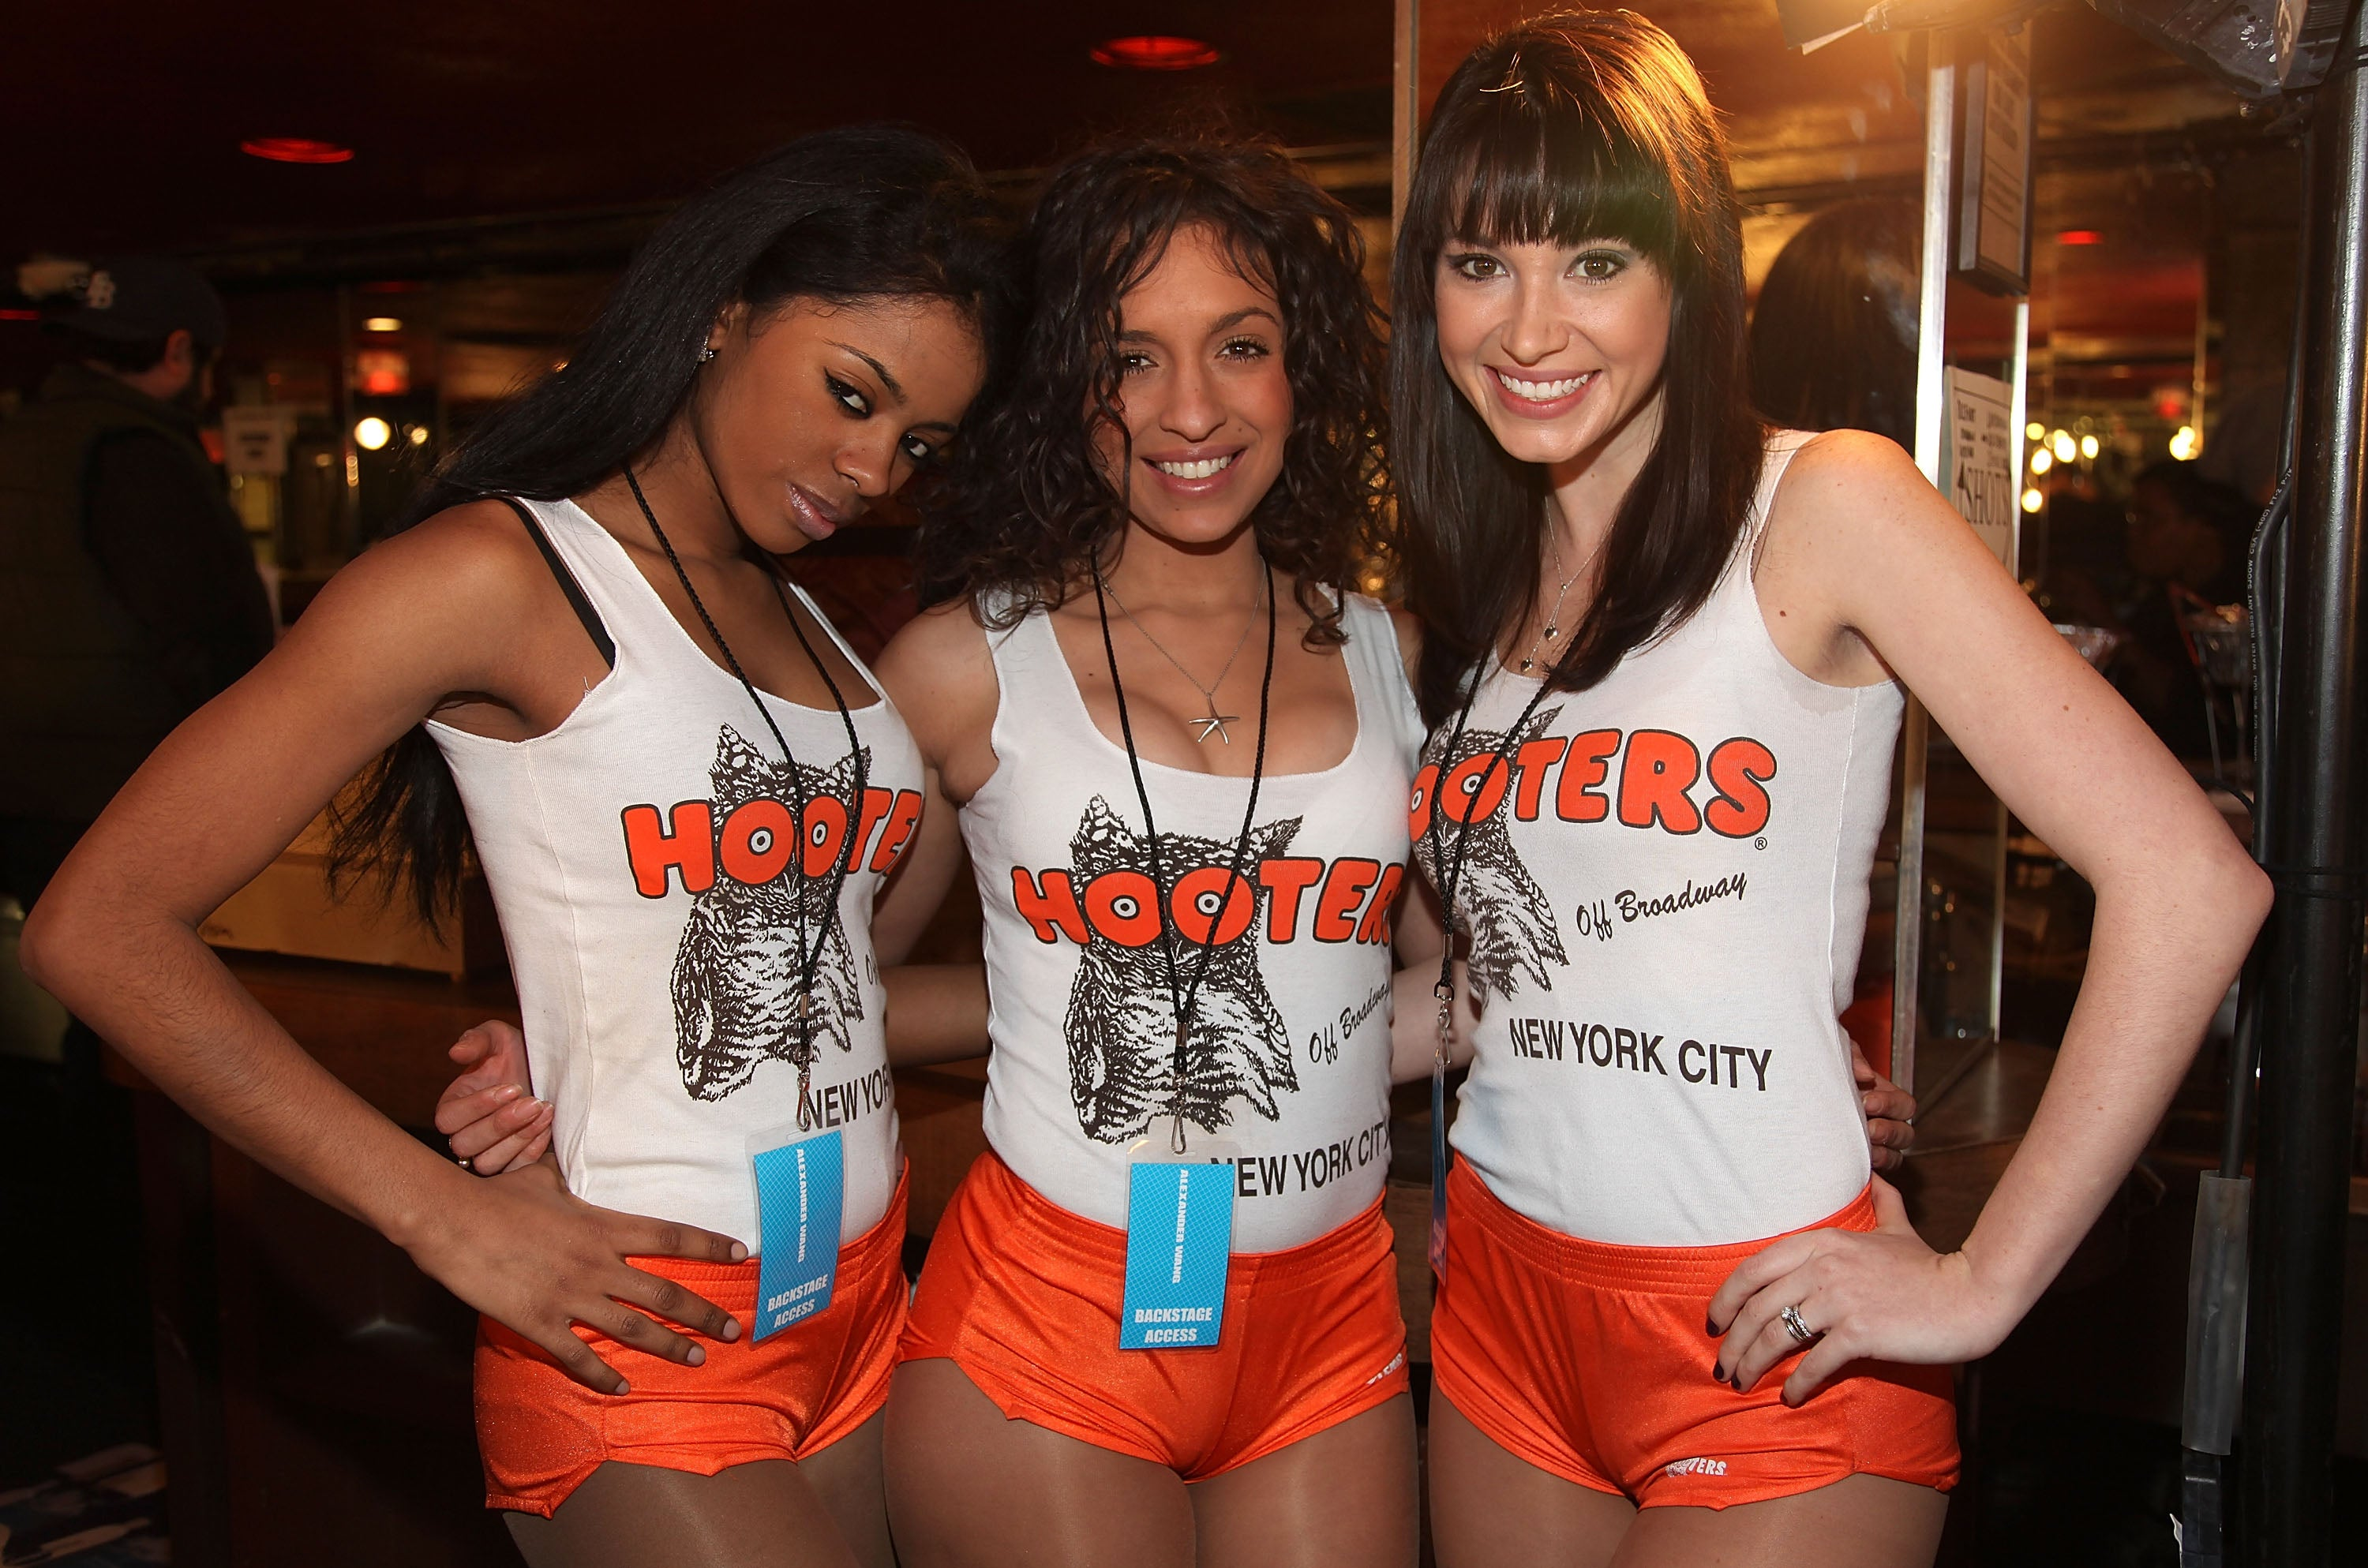 Hooters Whispers 'Blockchain' And Its Parent Company's Stock Soars 50 Per Cent